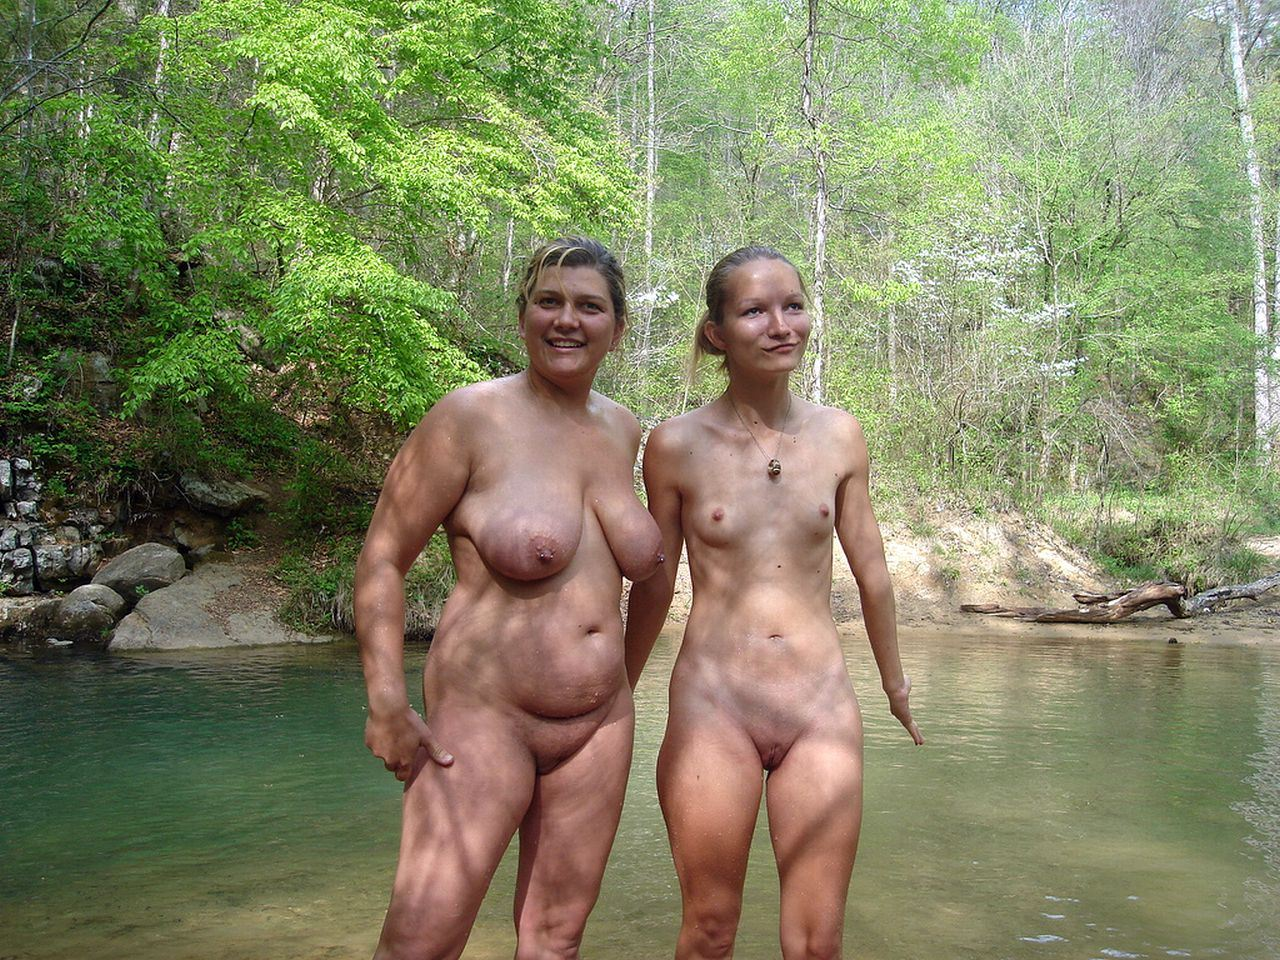 nudist and naturist photos